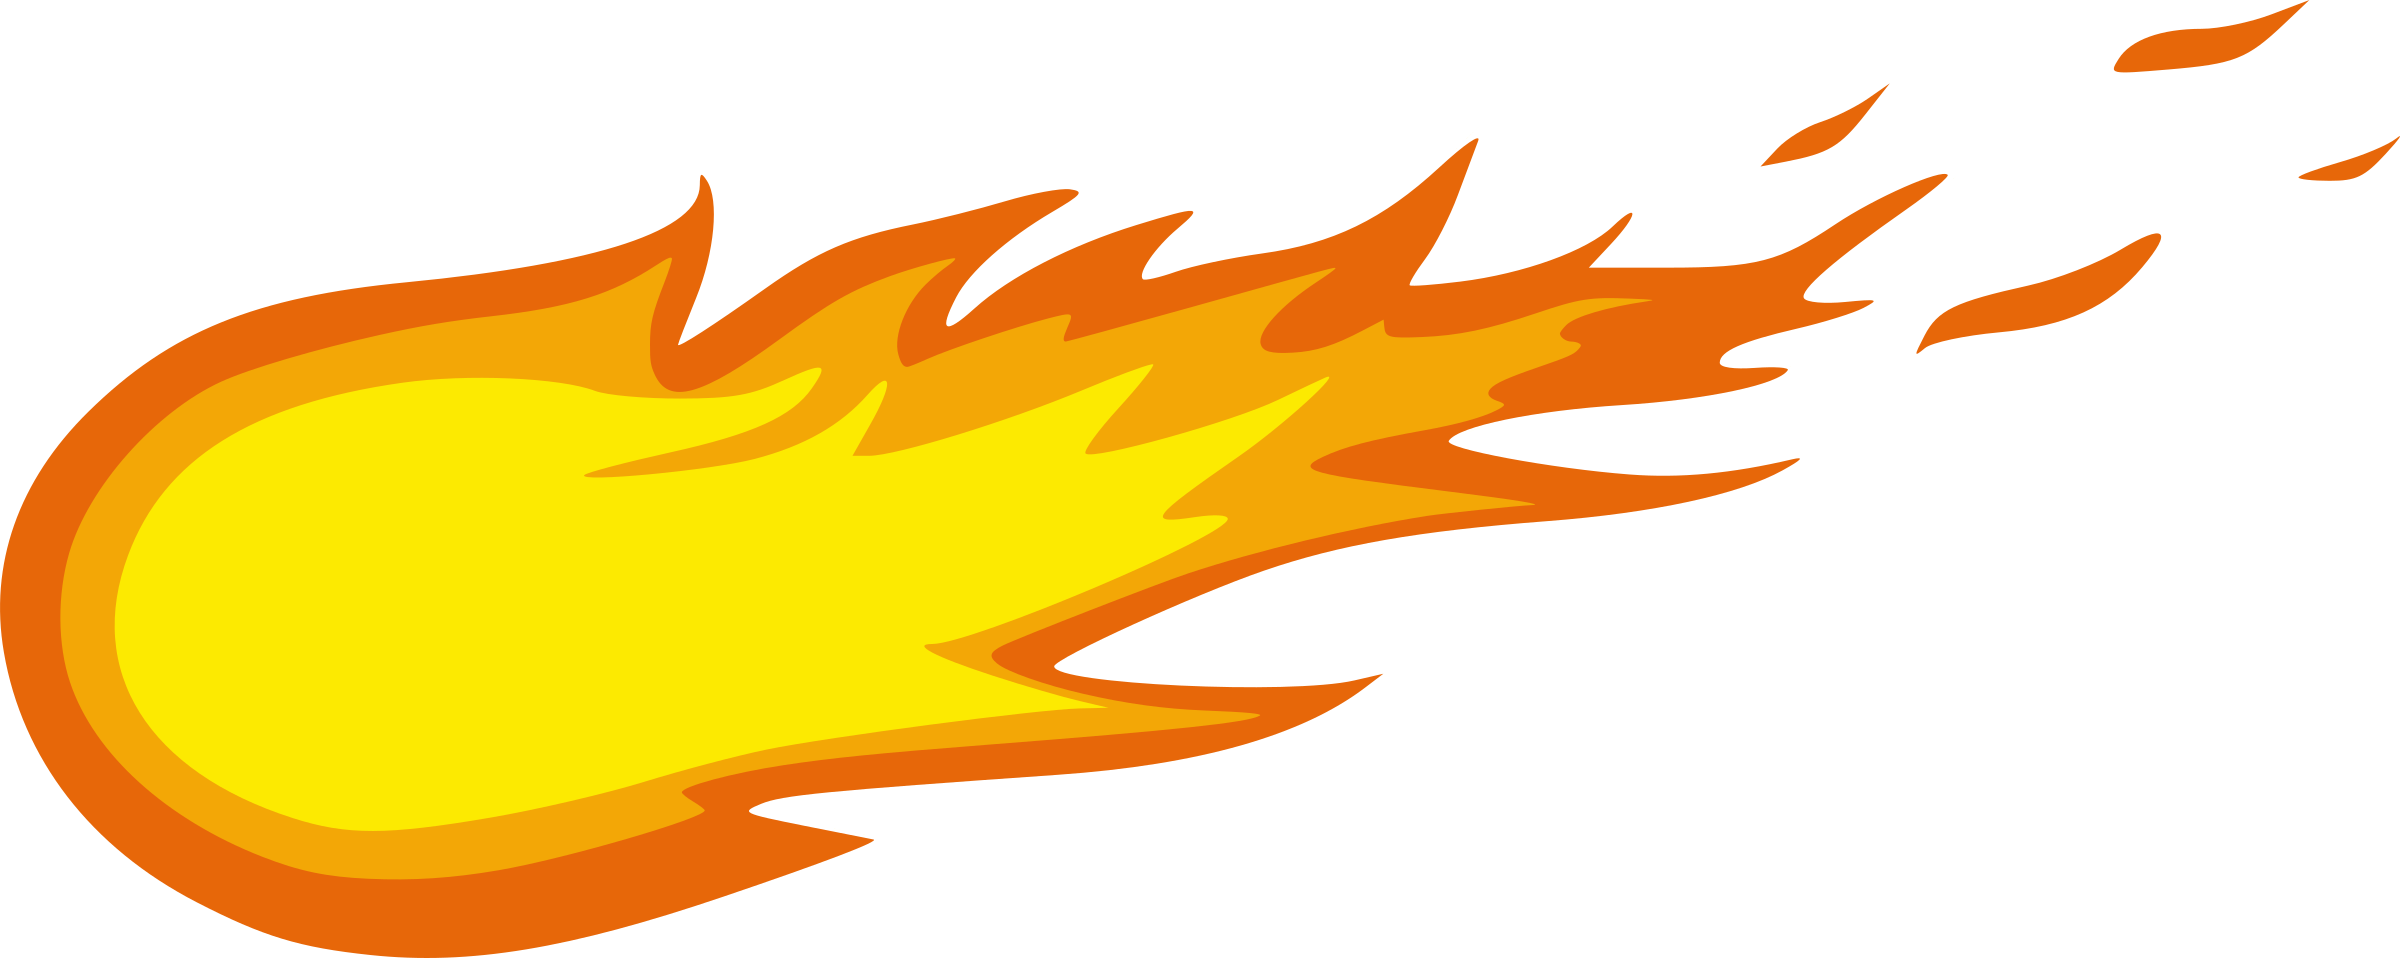 clip art freeuse library I HAVE COME TO BRING FIRE TO THE EARTH